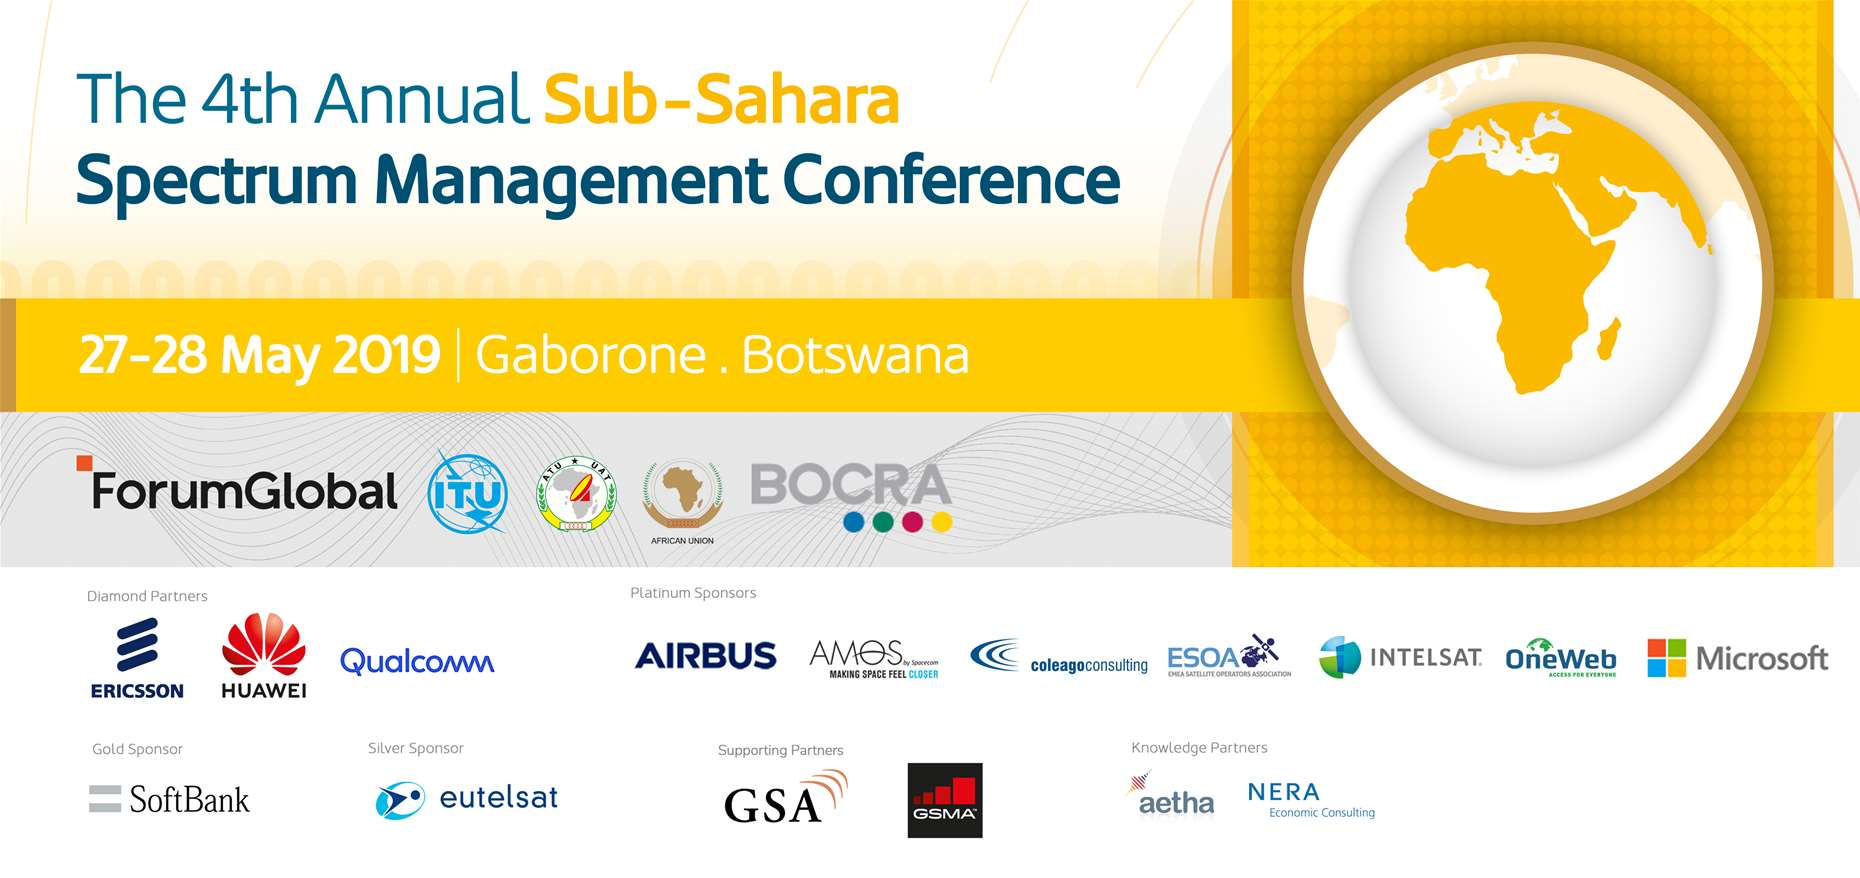 The 4th Annual Sub-Sahara Spectrum Management Conference | Speaker